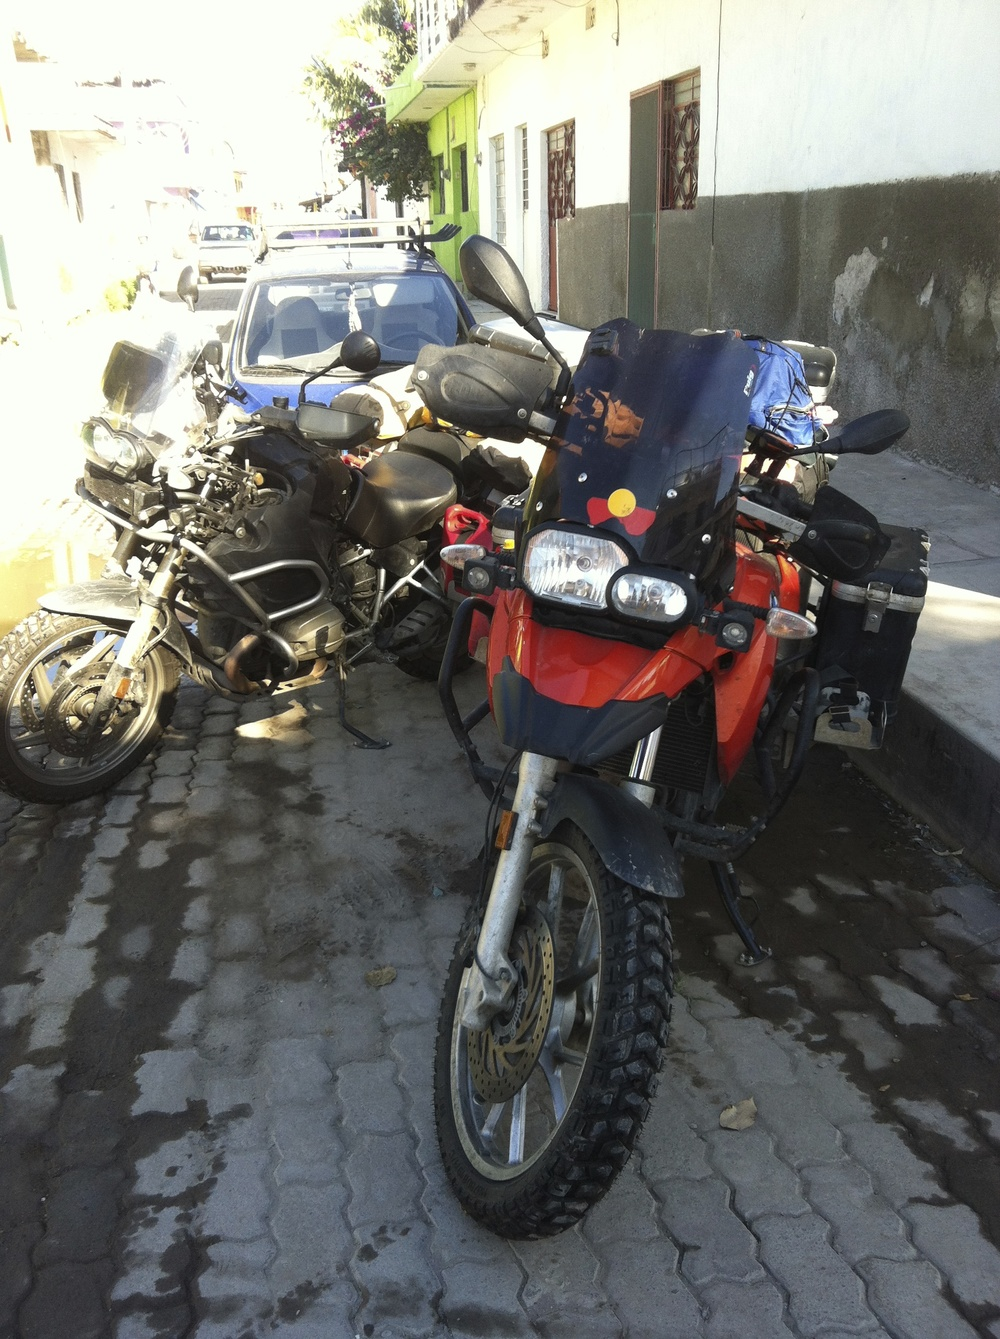 My bike missing a red gas container